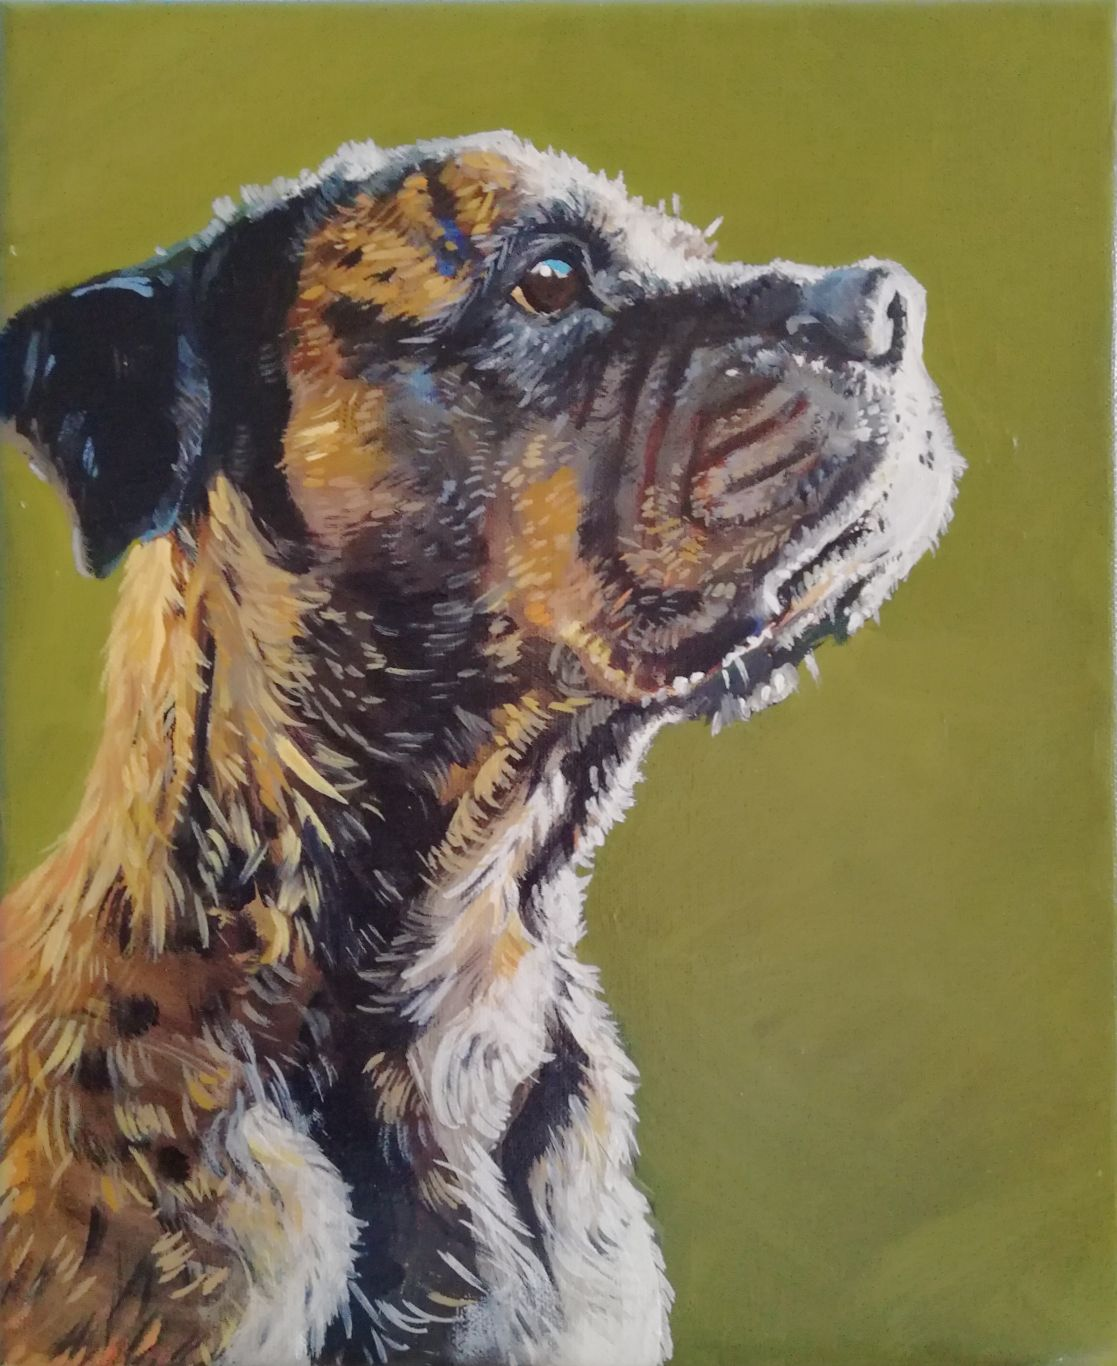 """From Jon - """"So special! You have captured Tiger so well, so real with all the character too, absolutely brilliant painting, and in oils too, the texture adds substance and life. Its outstanding, I love it. Thank you so much"""""""